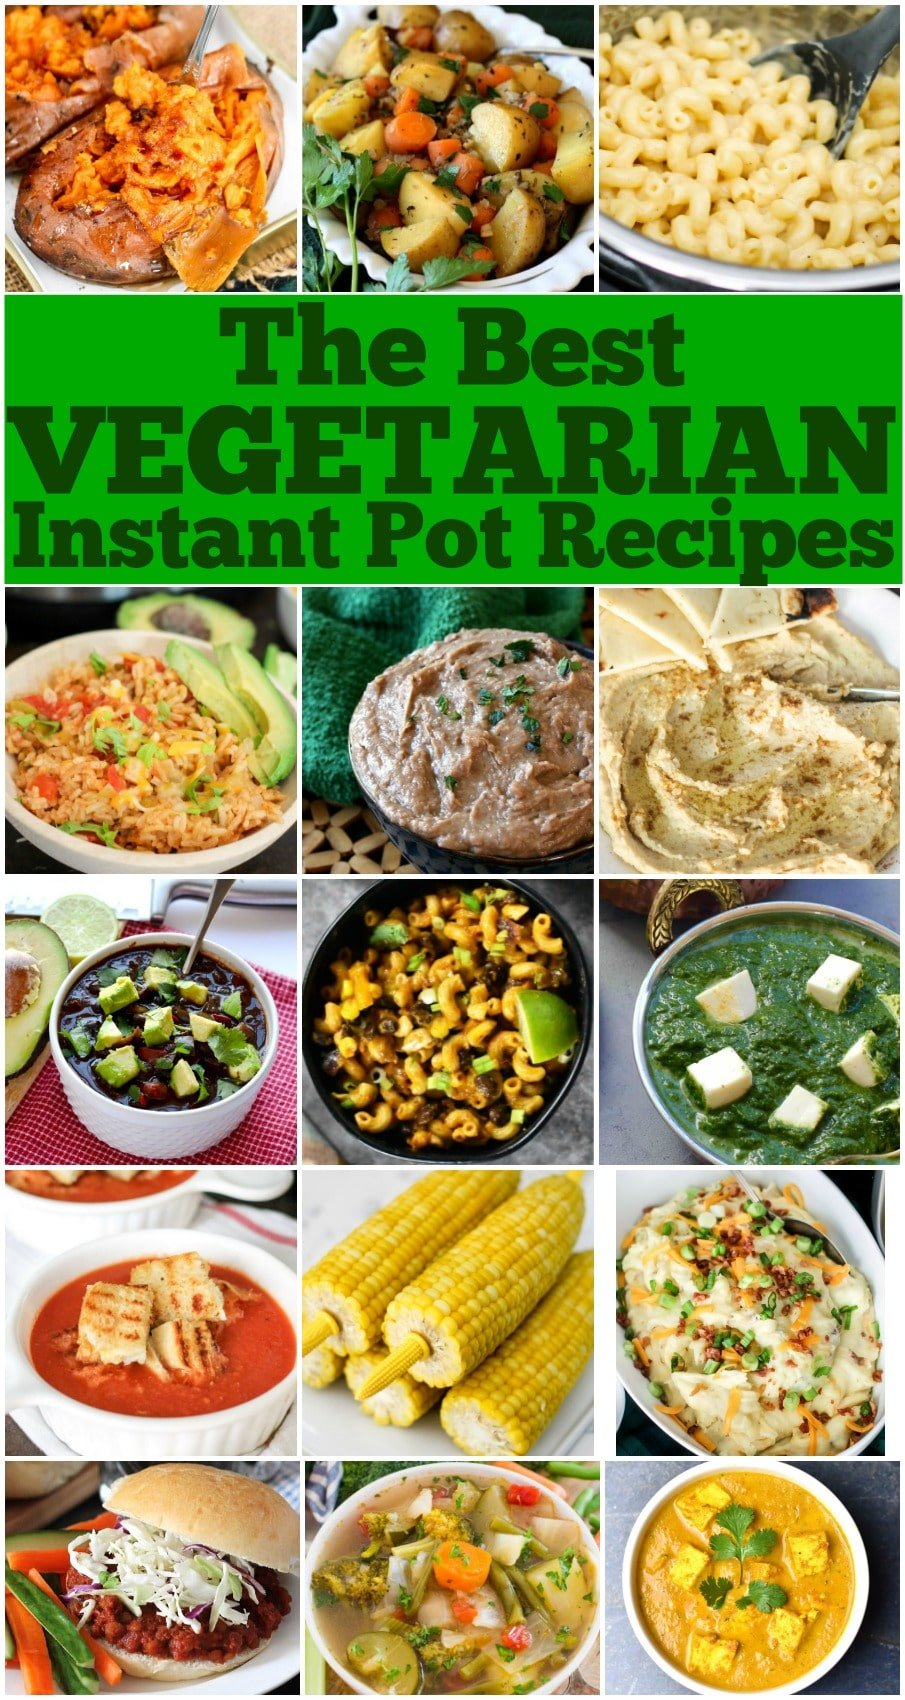 These are the best vegetarian instant pot recipes; From side dishes to main dishes, and a variety of cuisines, there is definitely something for everyone!